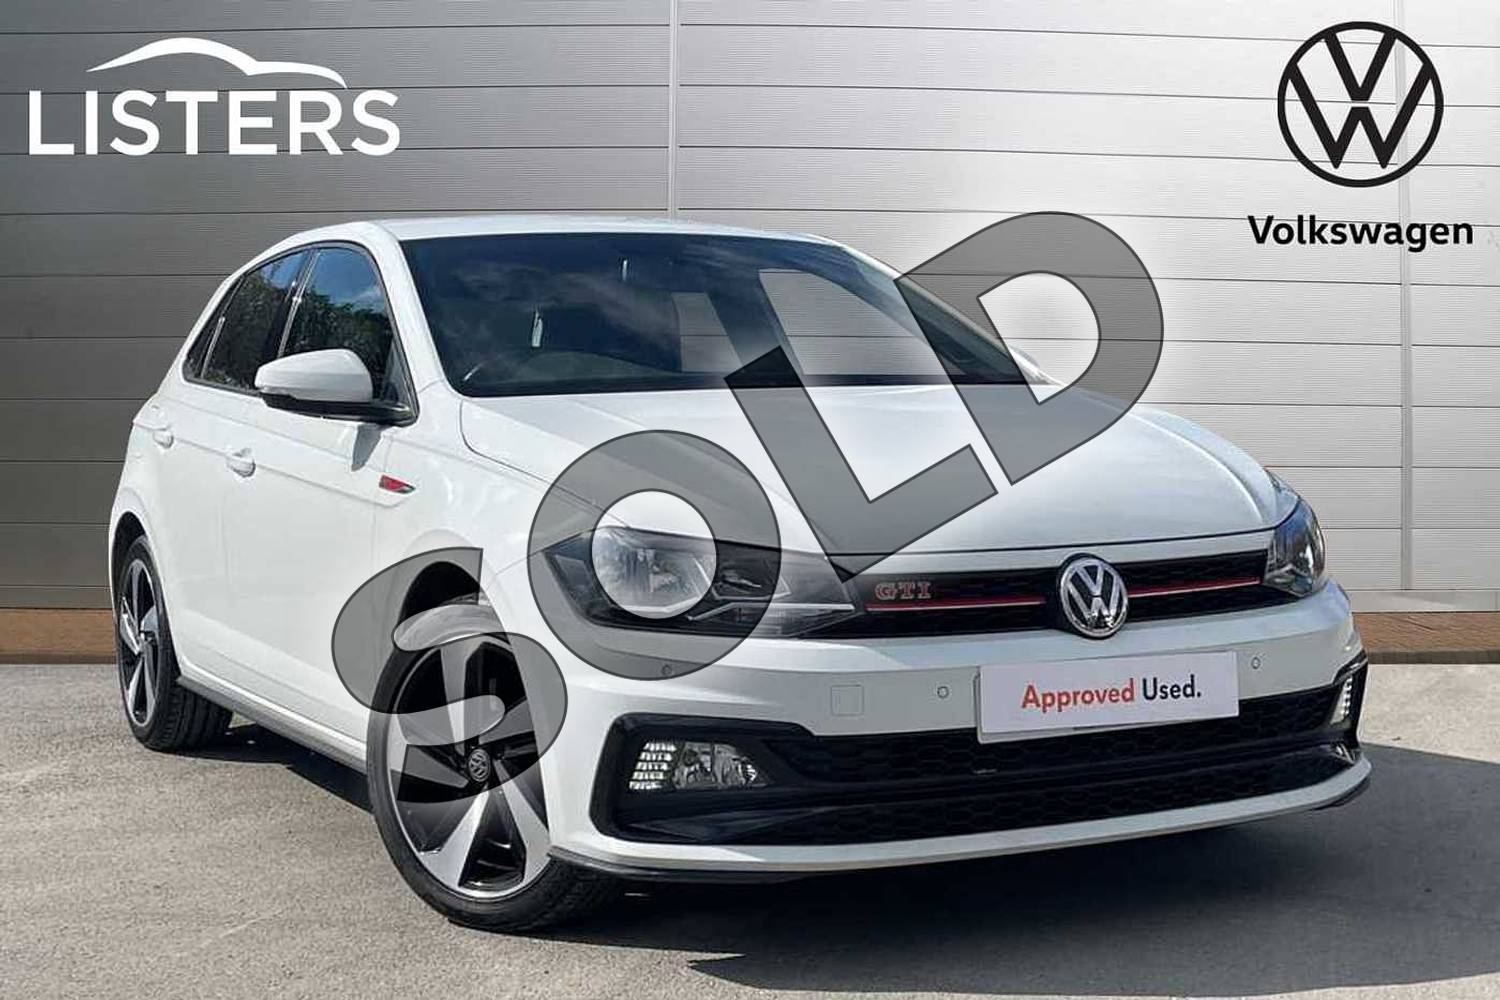 2018 Volkswagen Polo Hatchback 2.0 TSI GTI 5dr DSG in Pure white at Listers Volkswagen Loughborough